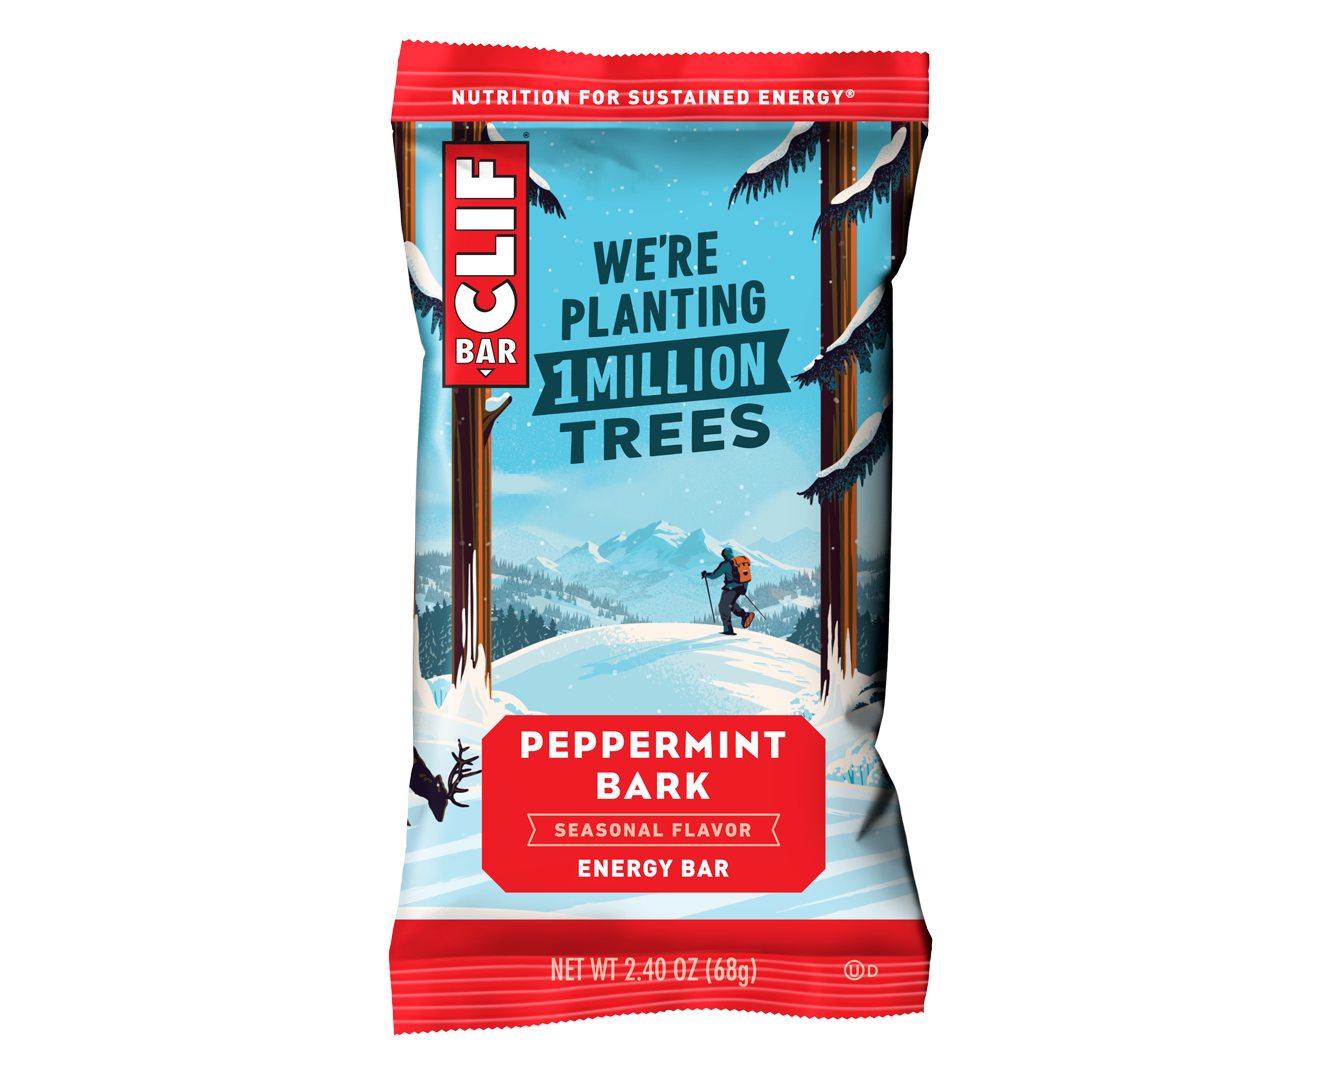 Peppermint Bark packaging